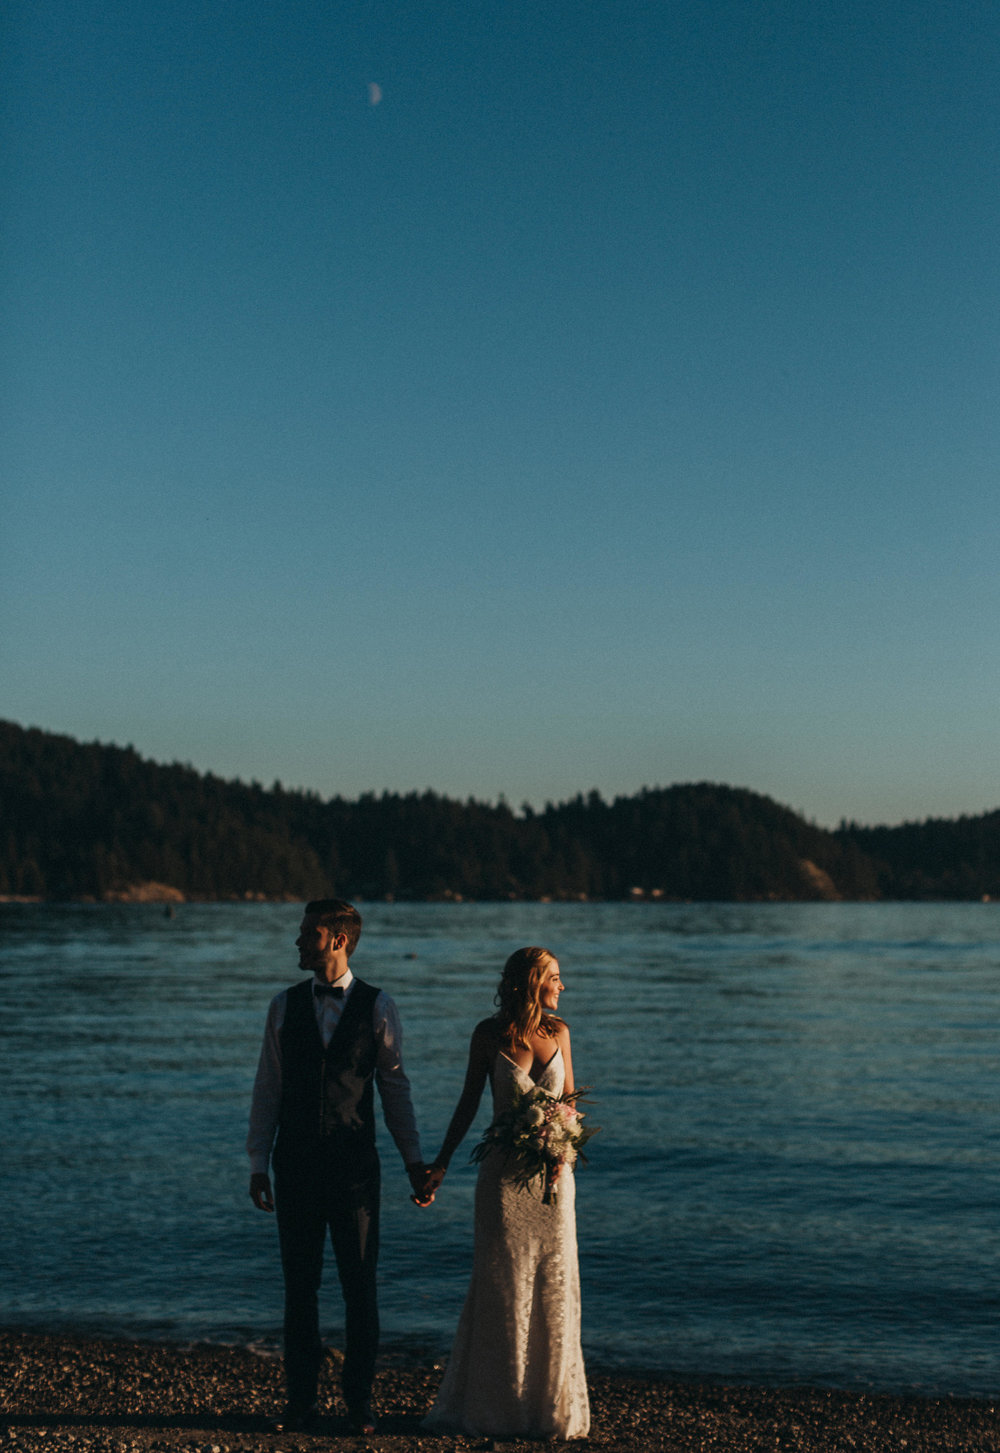 Sunshine Coast Wedding Photographer, Gibsons Wedding Photos, Sunset Beach Wedding Photos, Jennifer Picard Photography, Vancouver Wedding Photography, Vancouver Wedding Photo and Video Team - Vegan Wedding -  (153).jpg